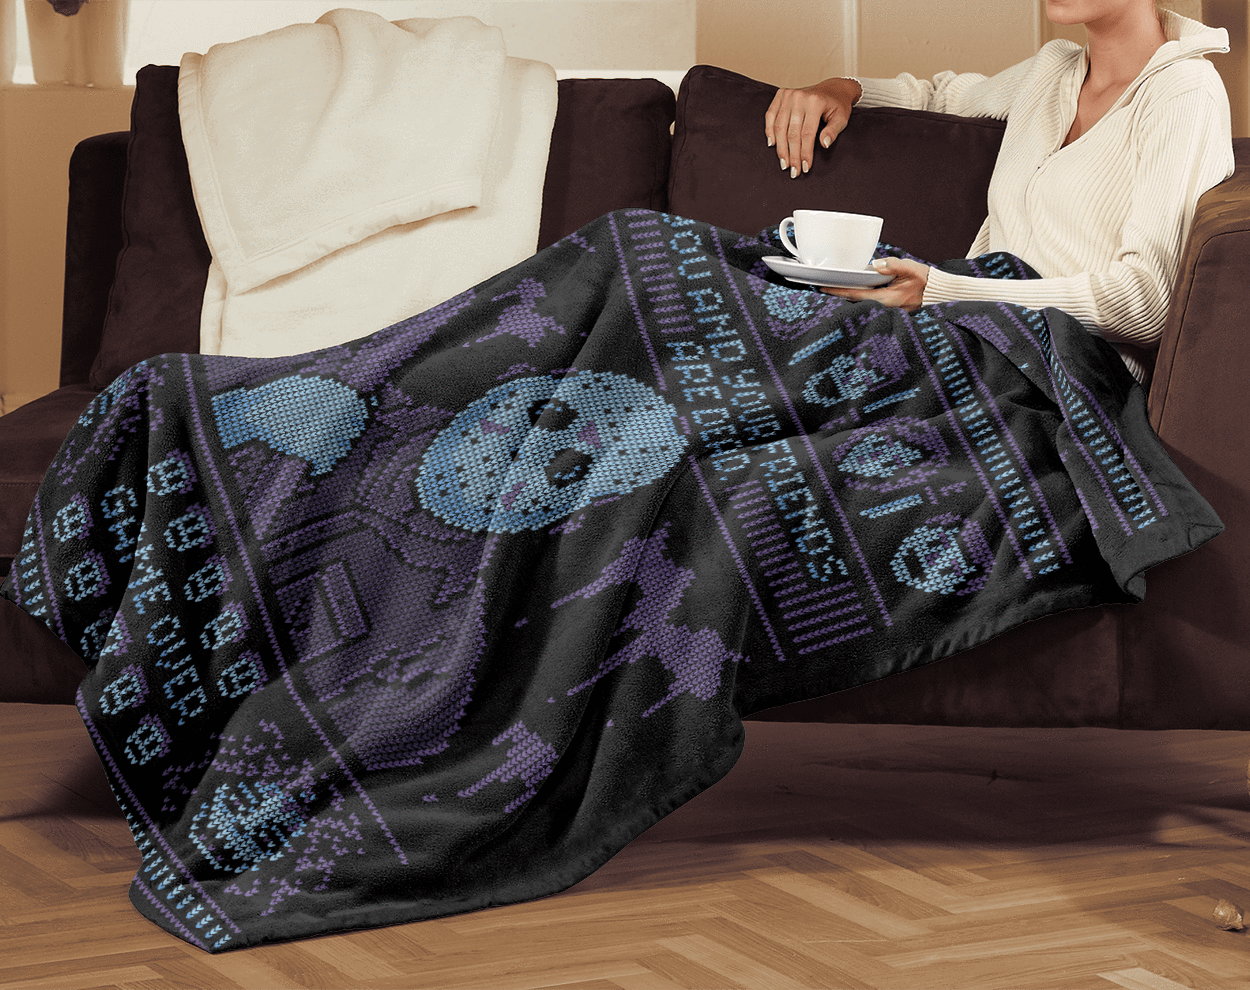 Blankets Game Over Ugly Sweater 60x80 MicroFleece Blanket